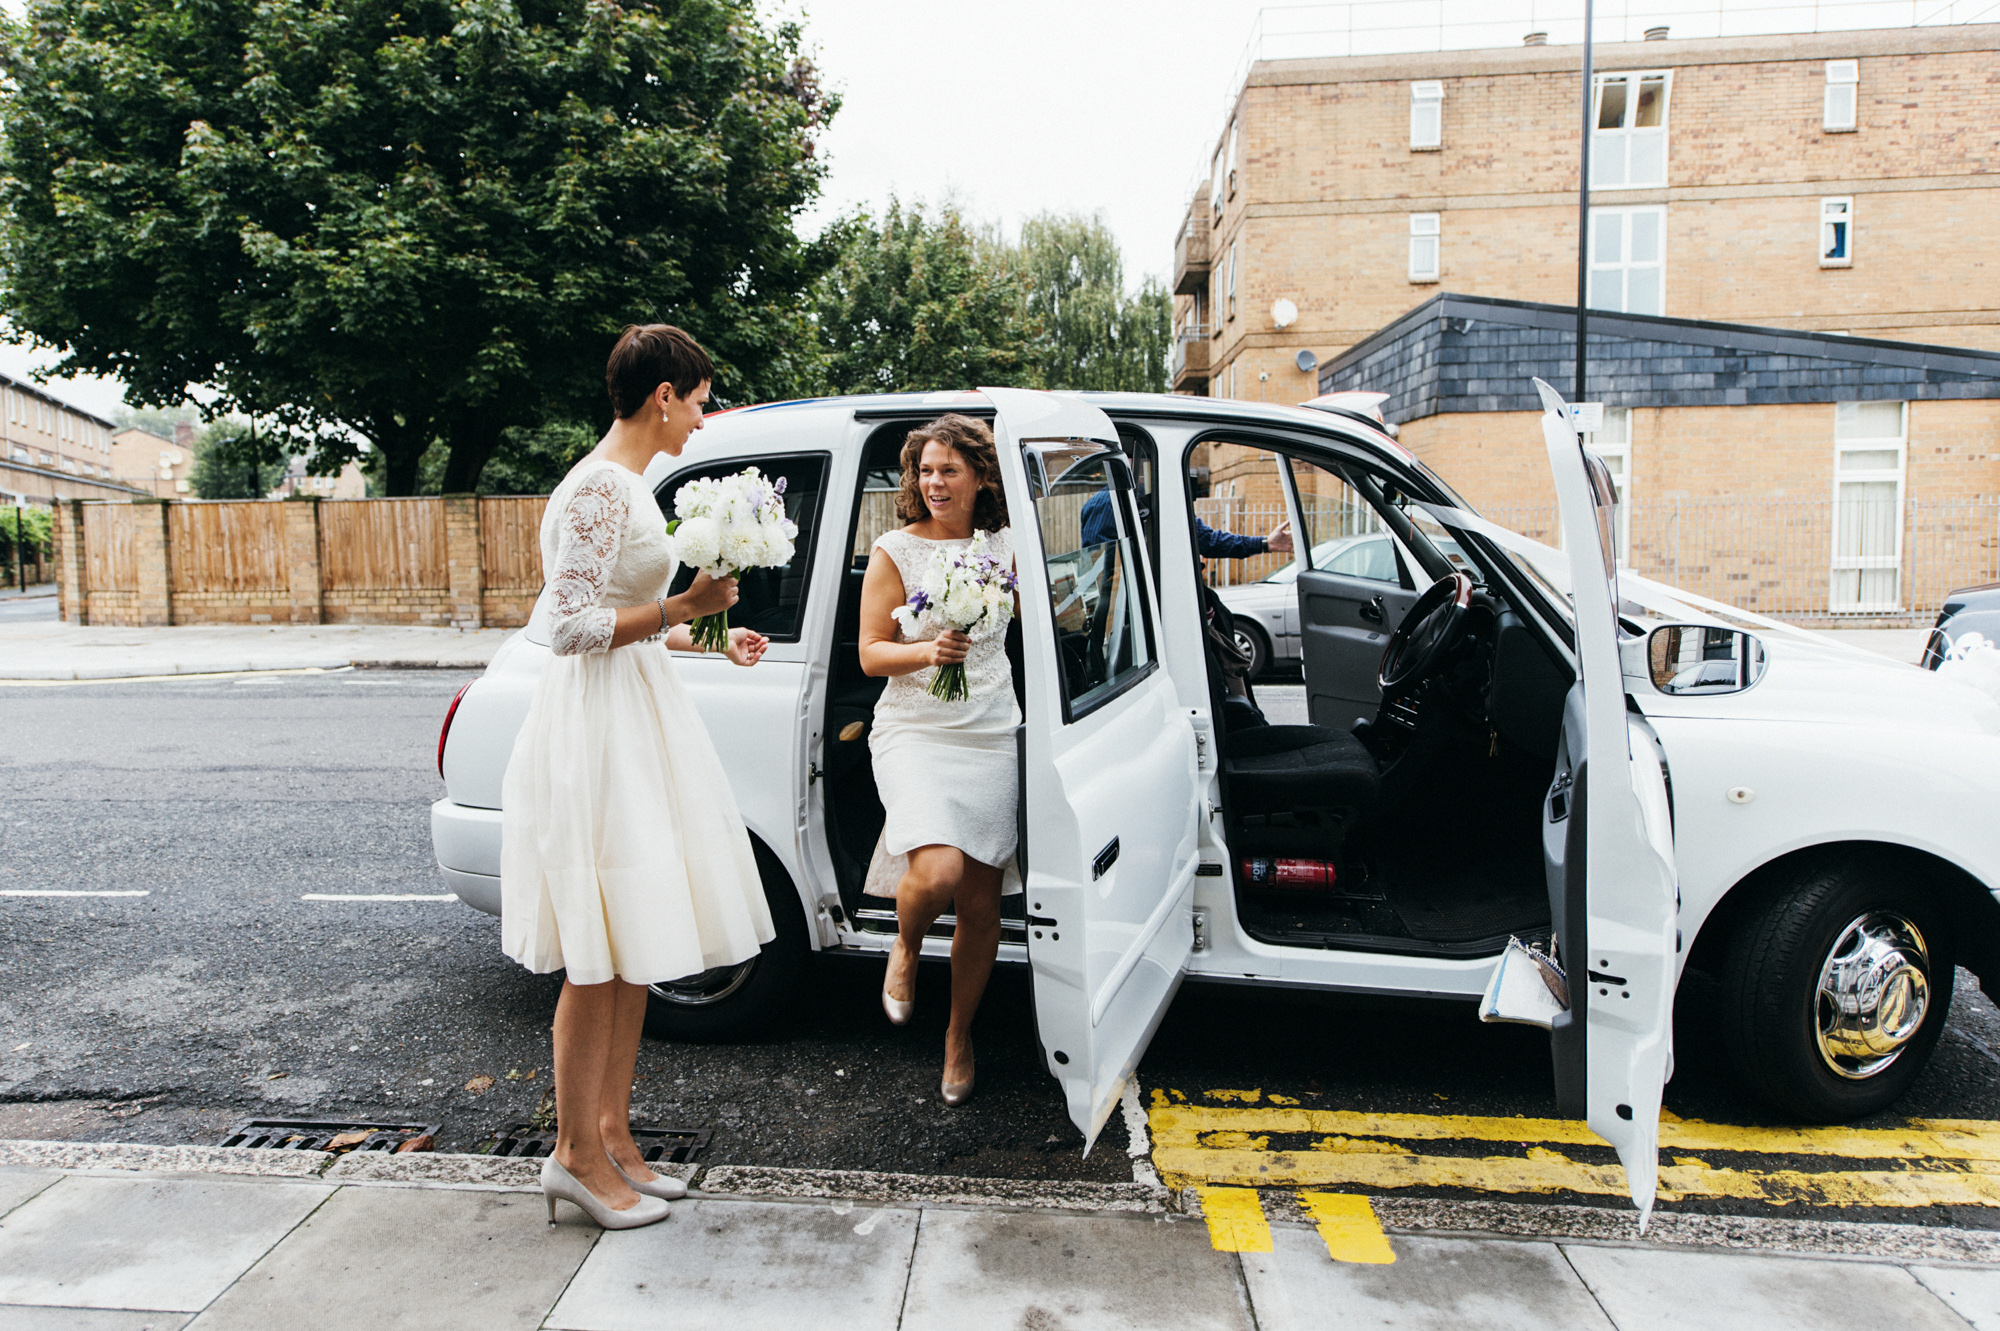 Brides in short lace wedding dresses get out of white Union Jack London taxi - gay wedding The Roost Dalston wedding - quirky London wedding photographer © Babb Photo